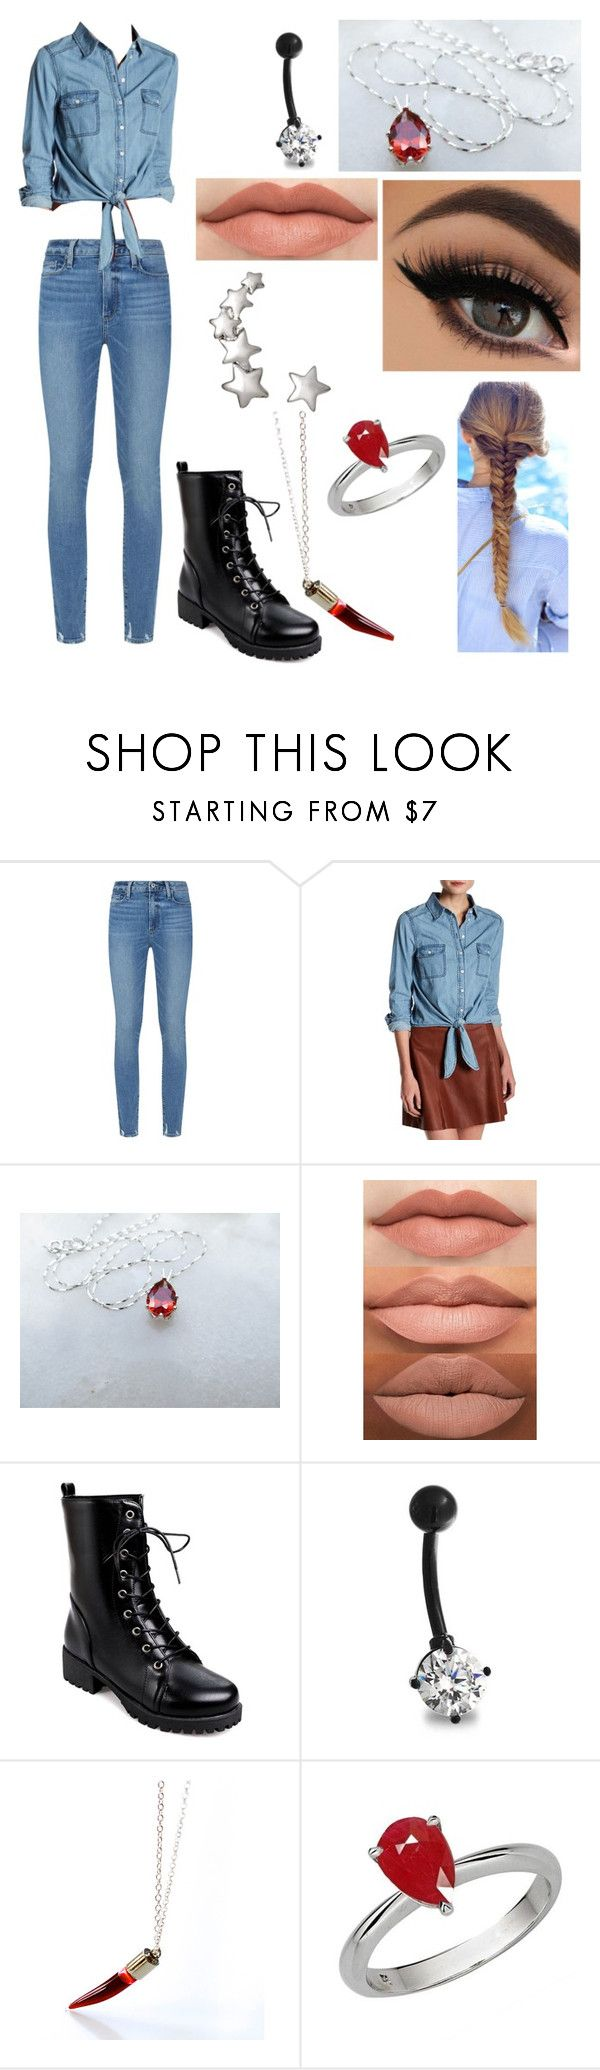 """""""Katrena Prince's Outfit (HEMLOCK GROVE)"""" by katrenakearns ❤ liked on Polyvore featuring Paige Denim, cupcakes and cashmere, Bling Jewelry and YES"""